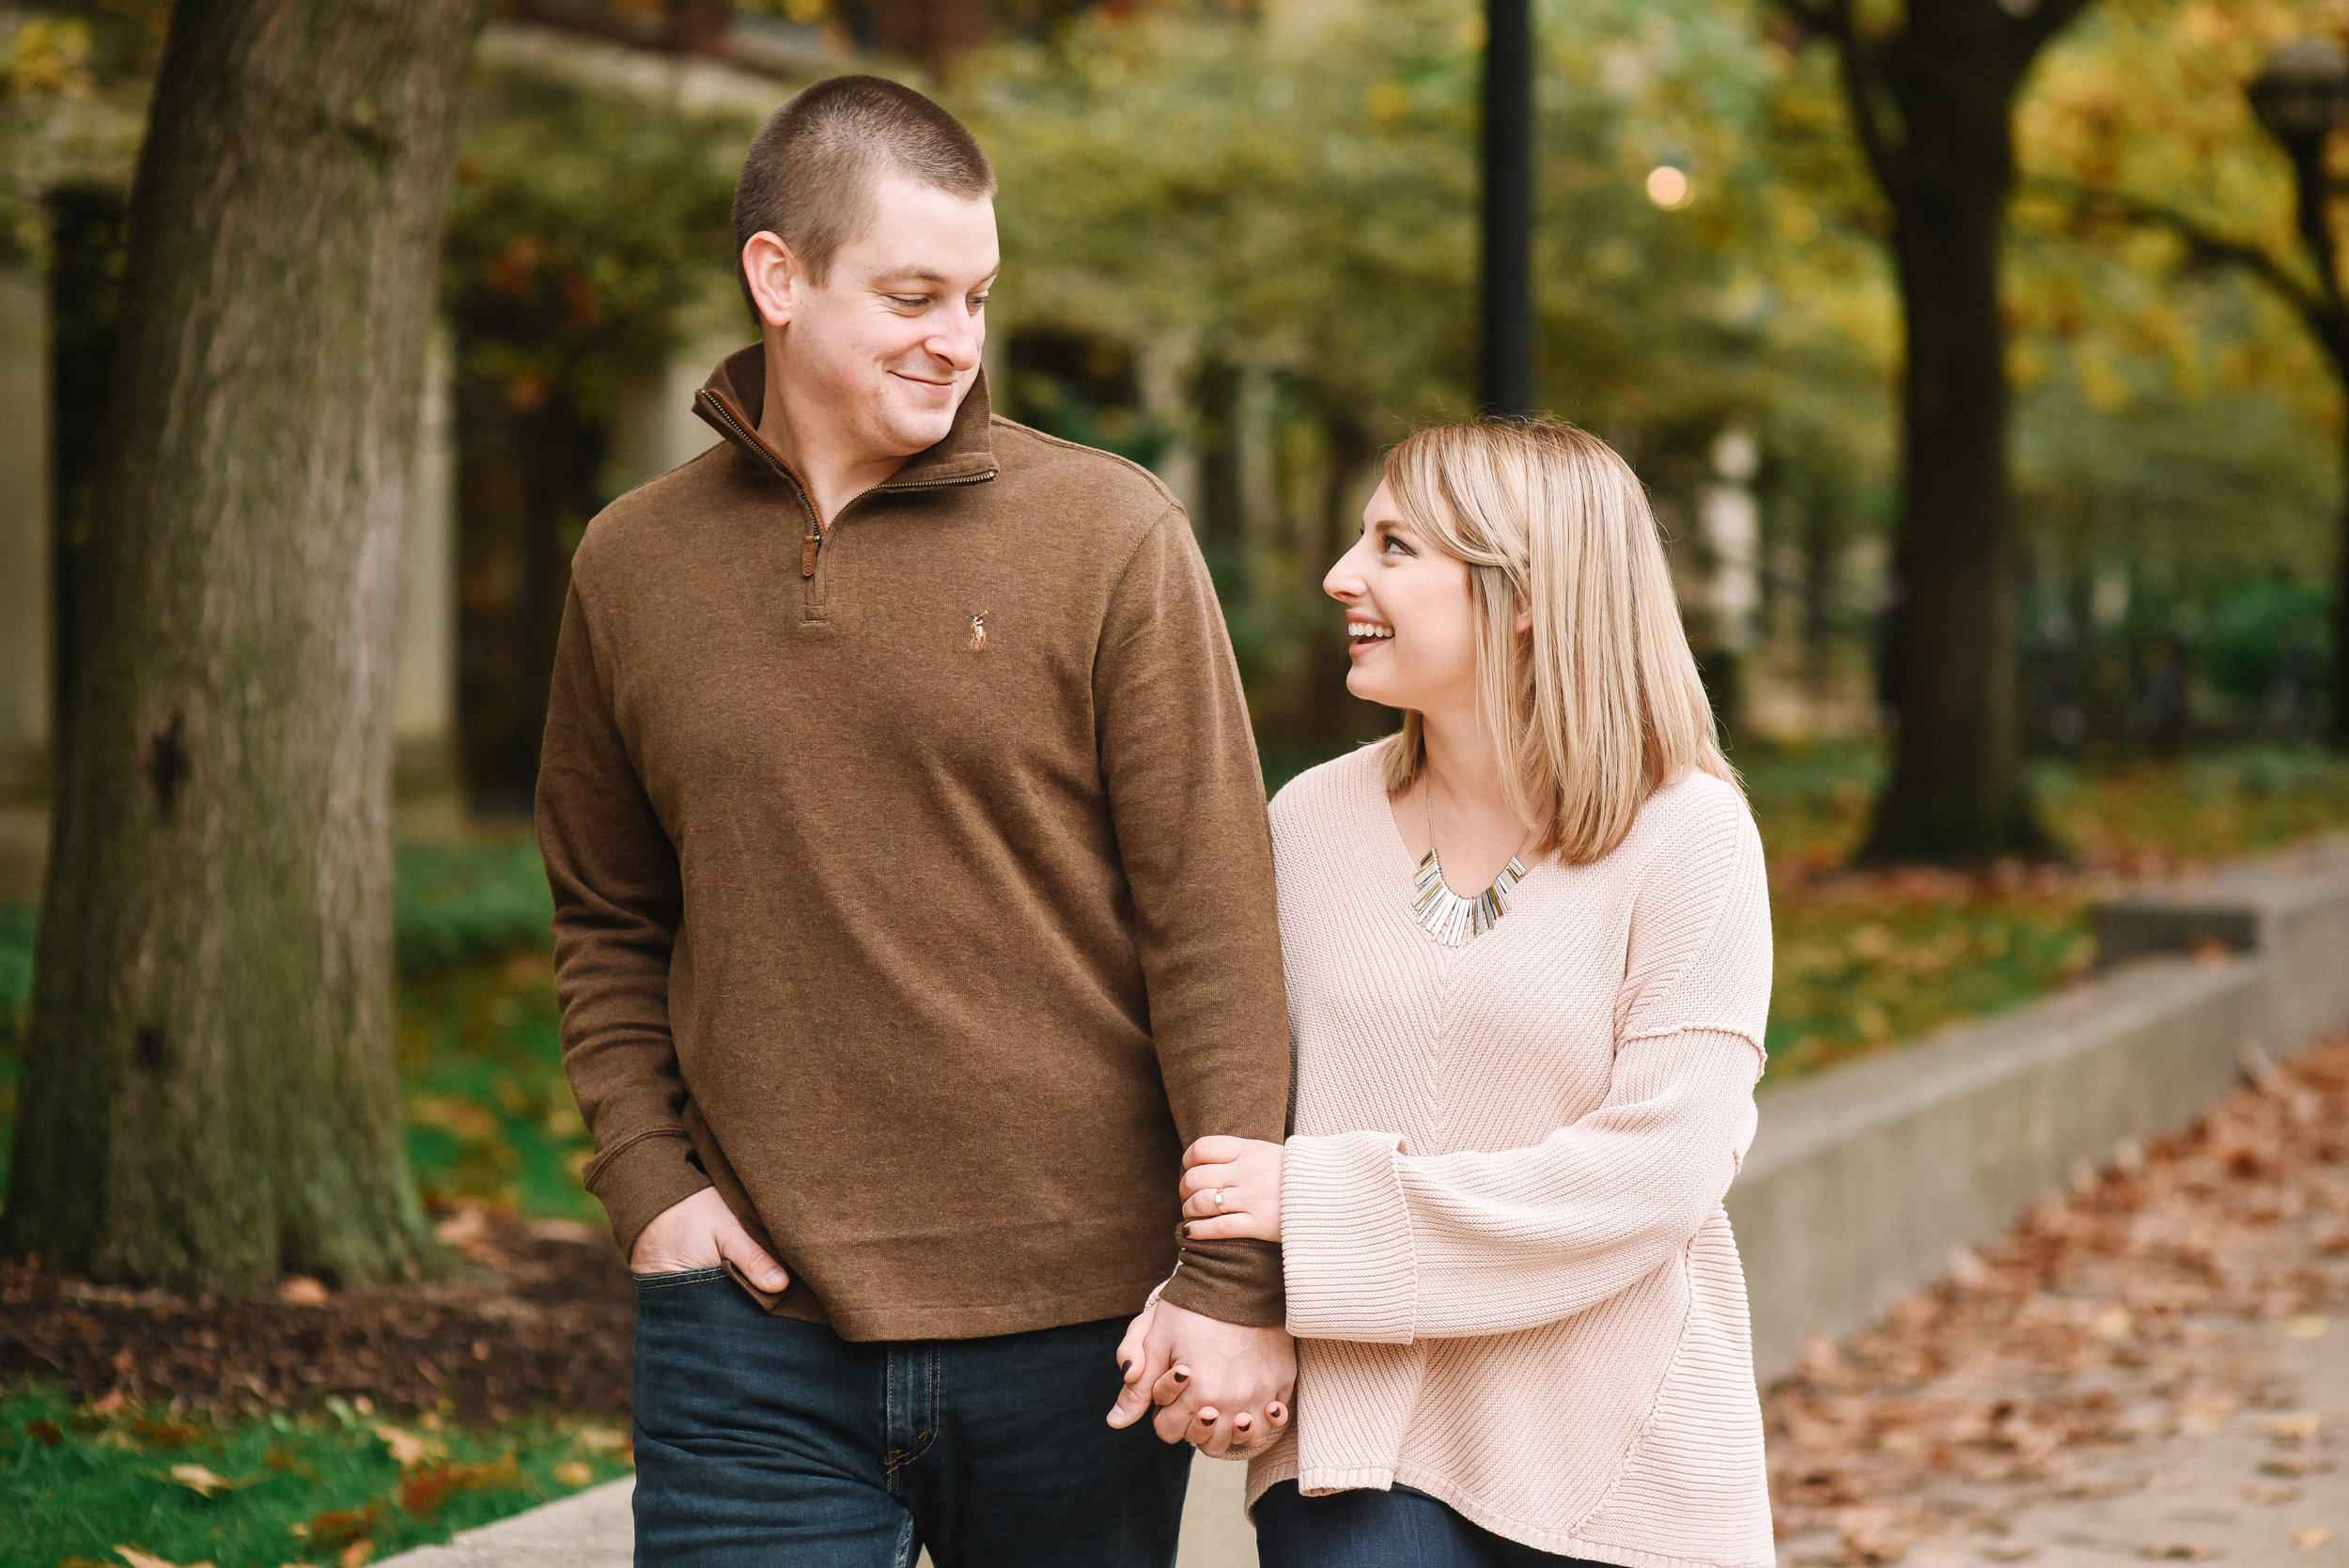 Law_Quad_Ann_Arbor_Engagement_Photos-17.jpg